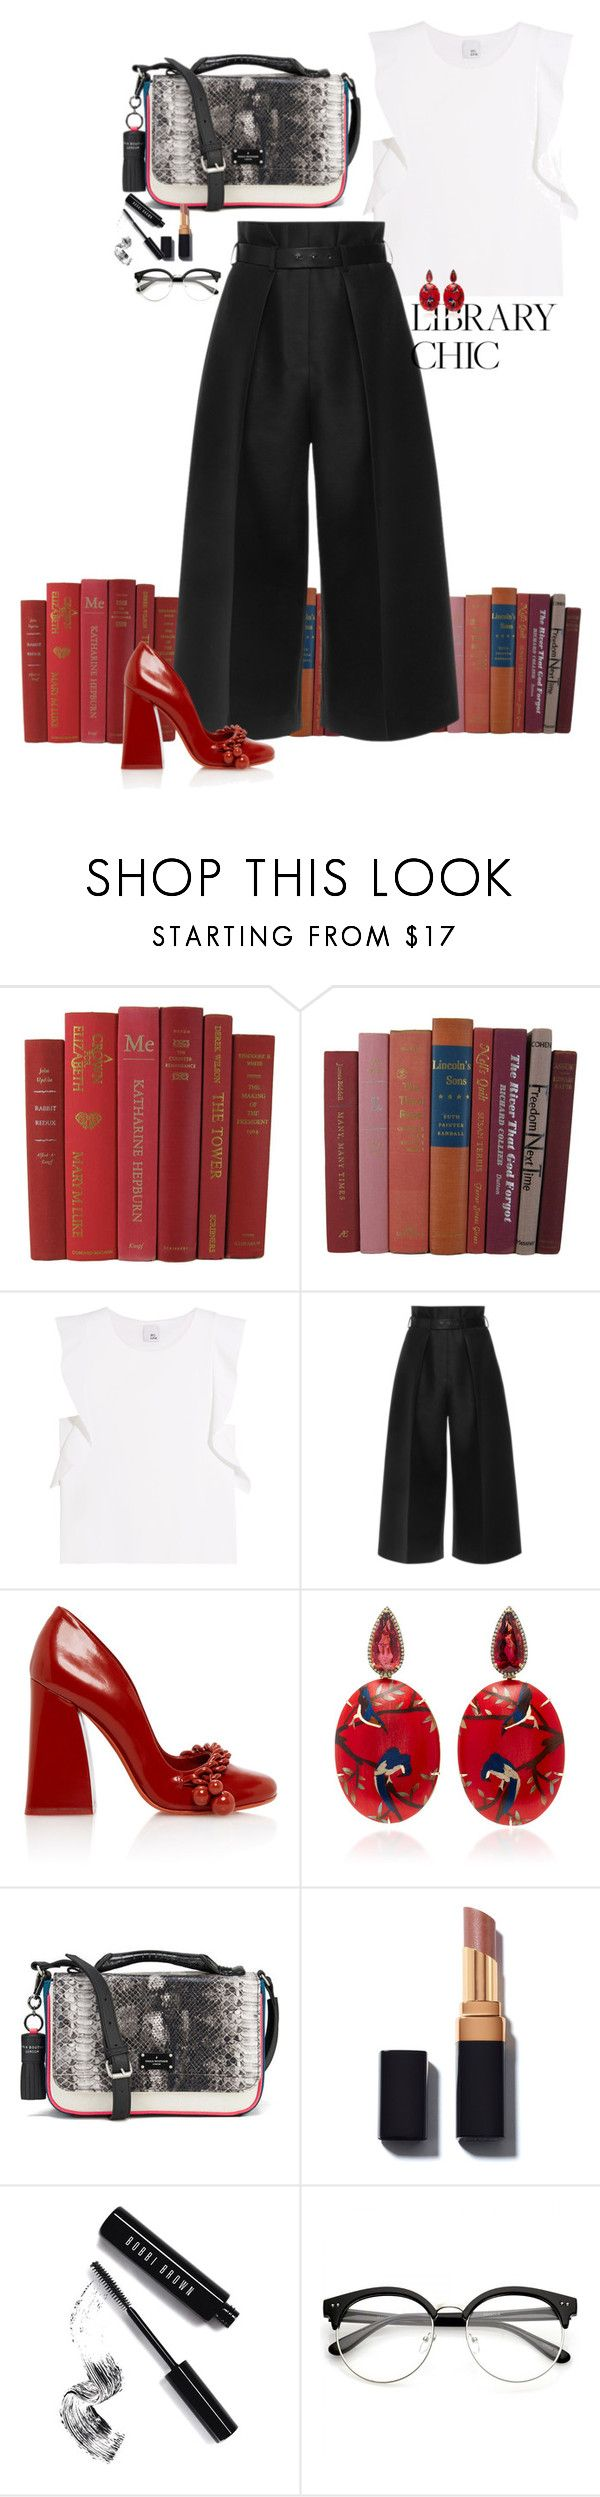 """books are chic"" by claire86-c ❤ liked on Polyvore featuring Iris & Ink, Martin Grant, Silvia Furmanovich, Paul's Boutique, Bobbi Brown Cosmetics, contest, contestentry and librarychic"